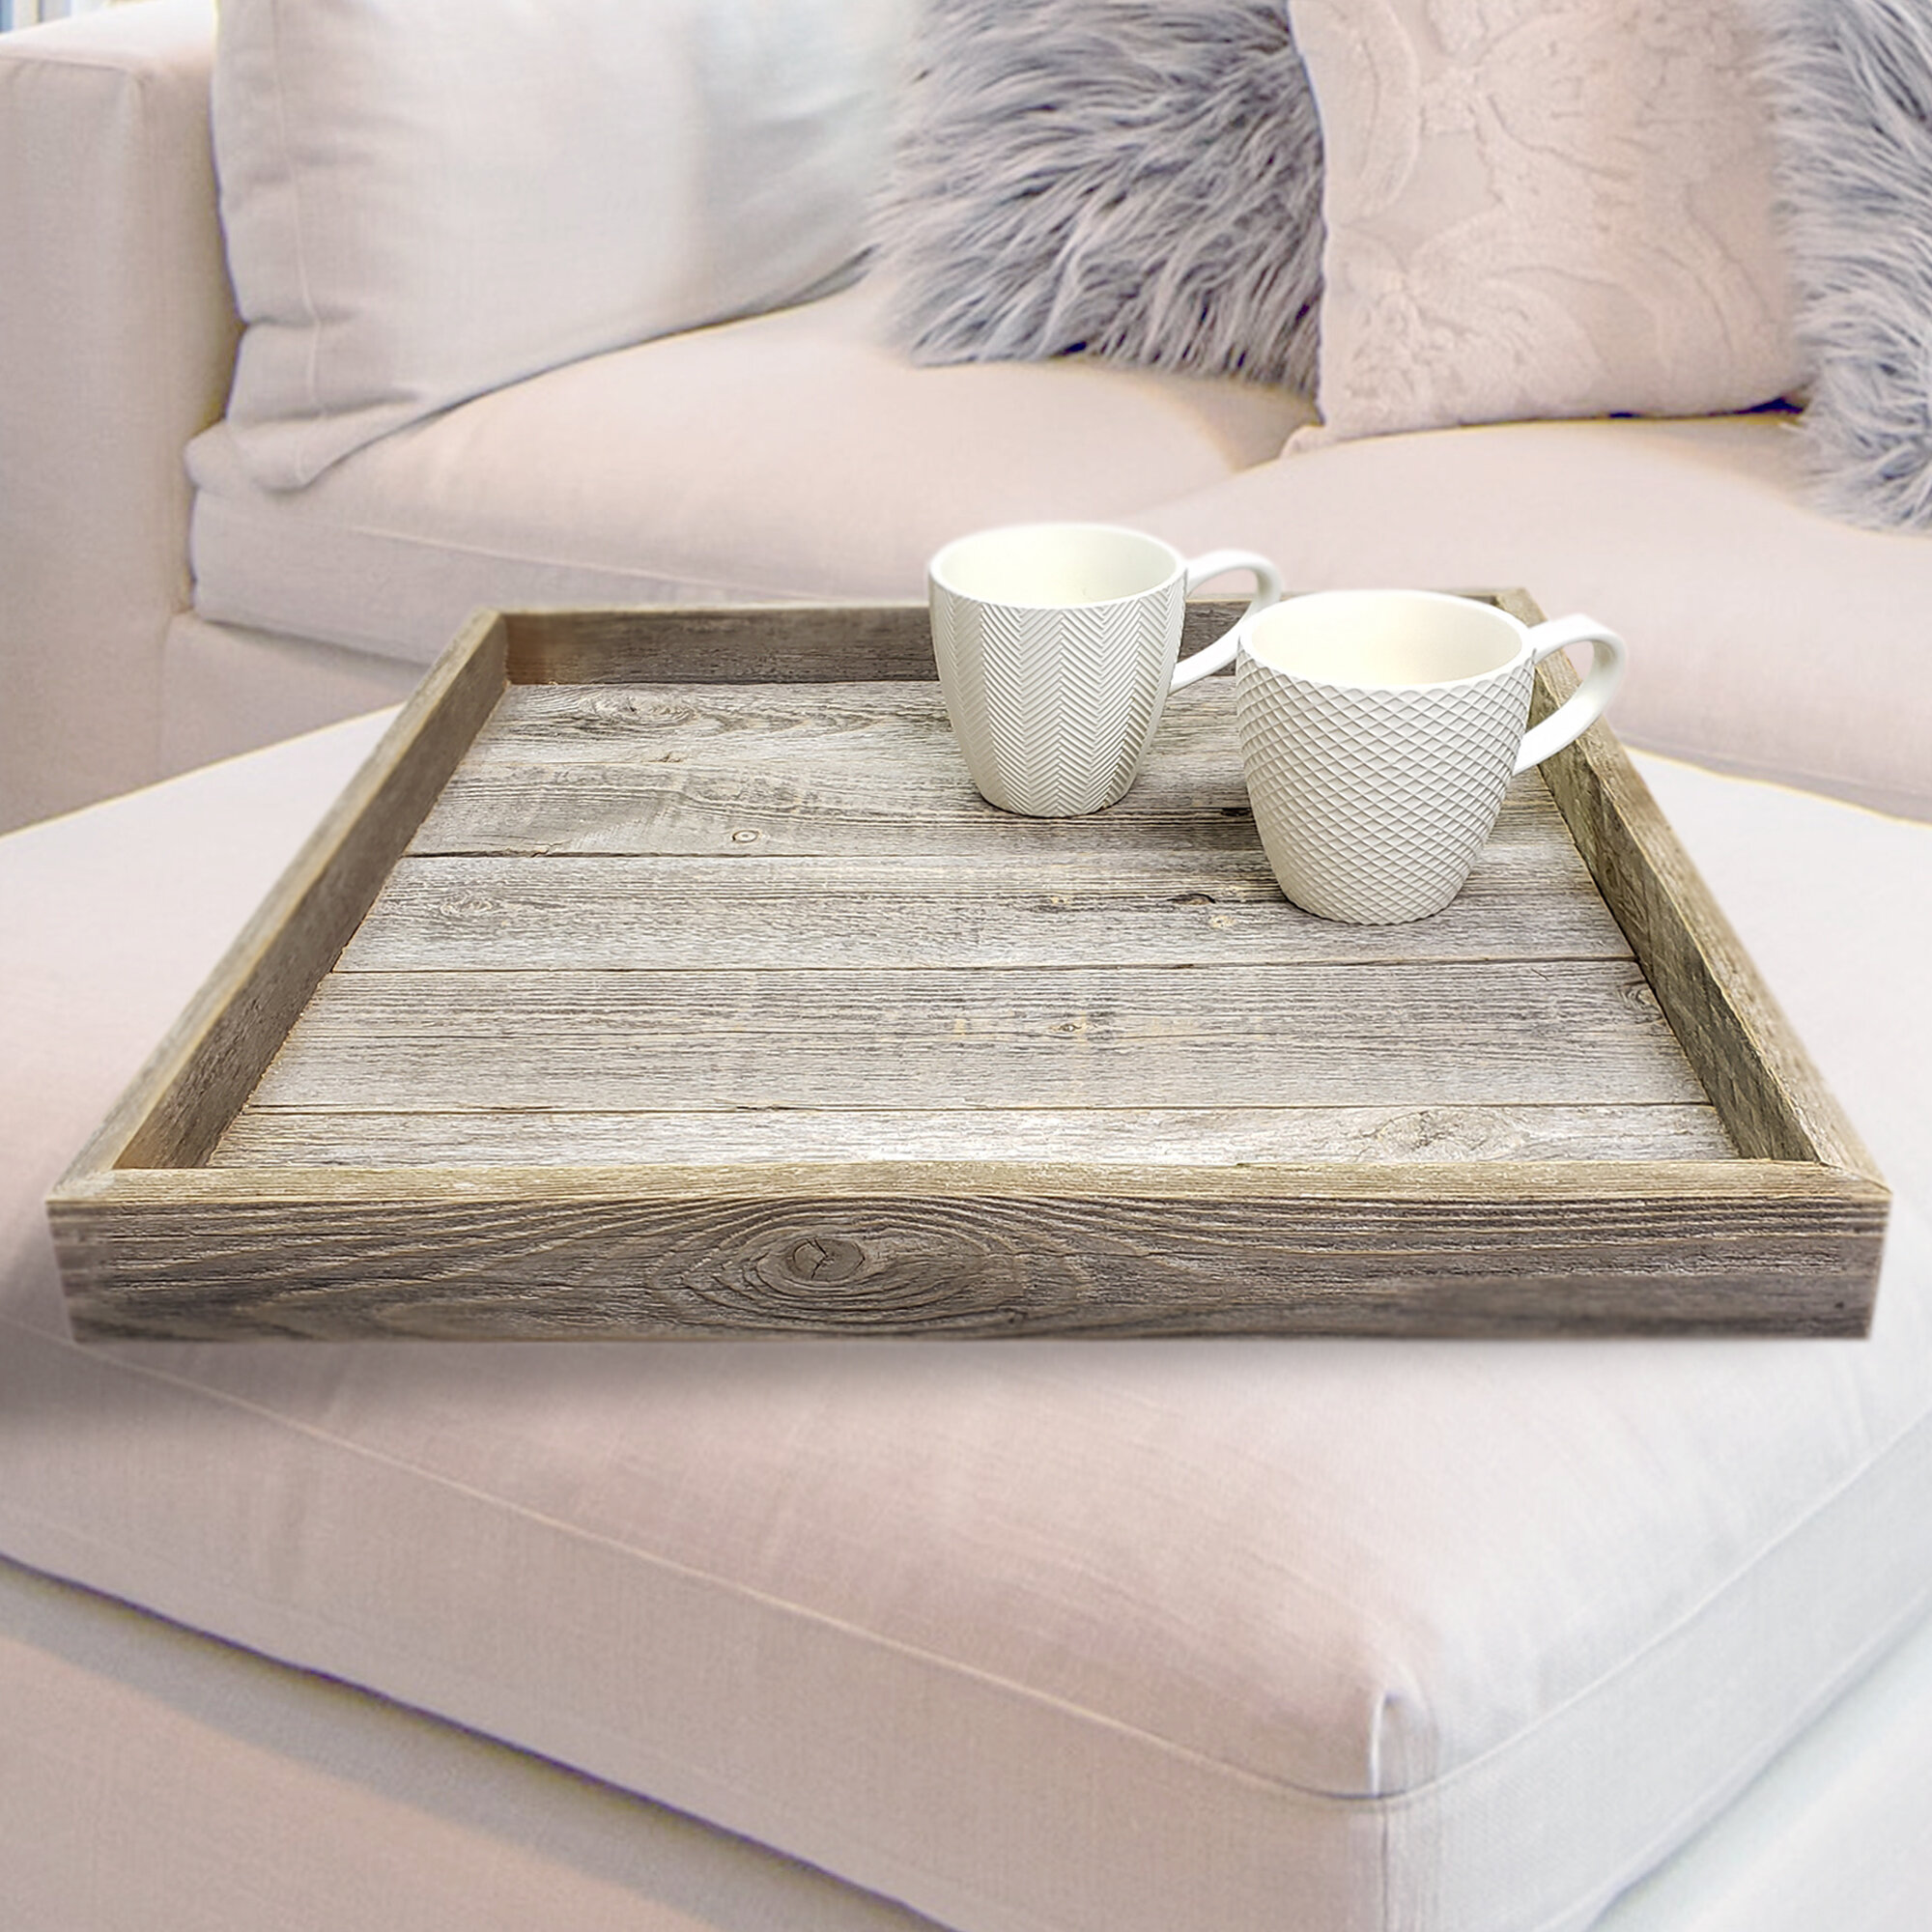 Ottoman Coffee Table Trays Free Shipping Over 35 Wayfair